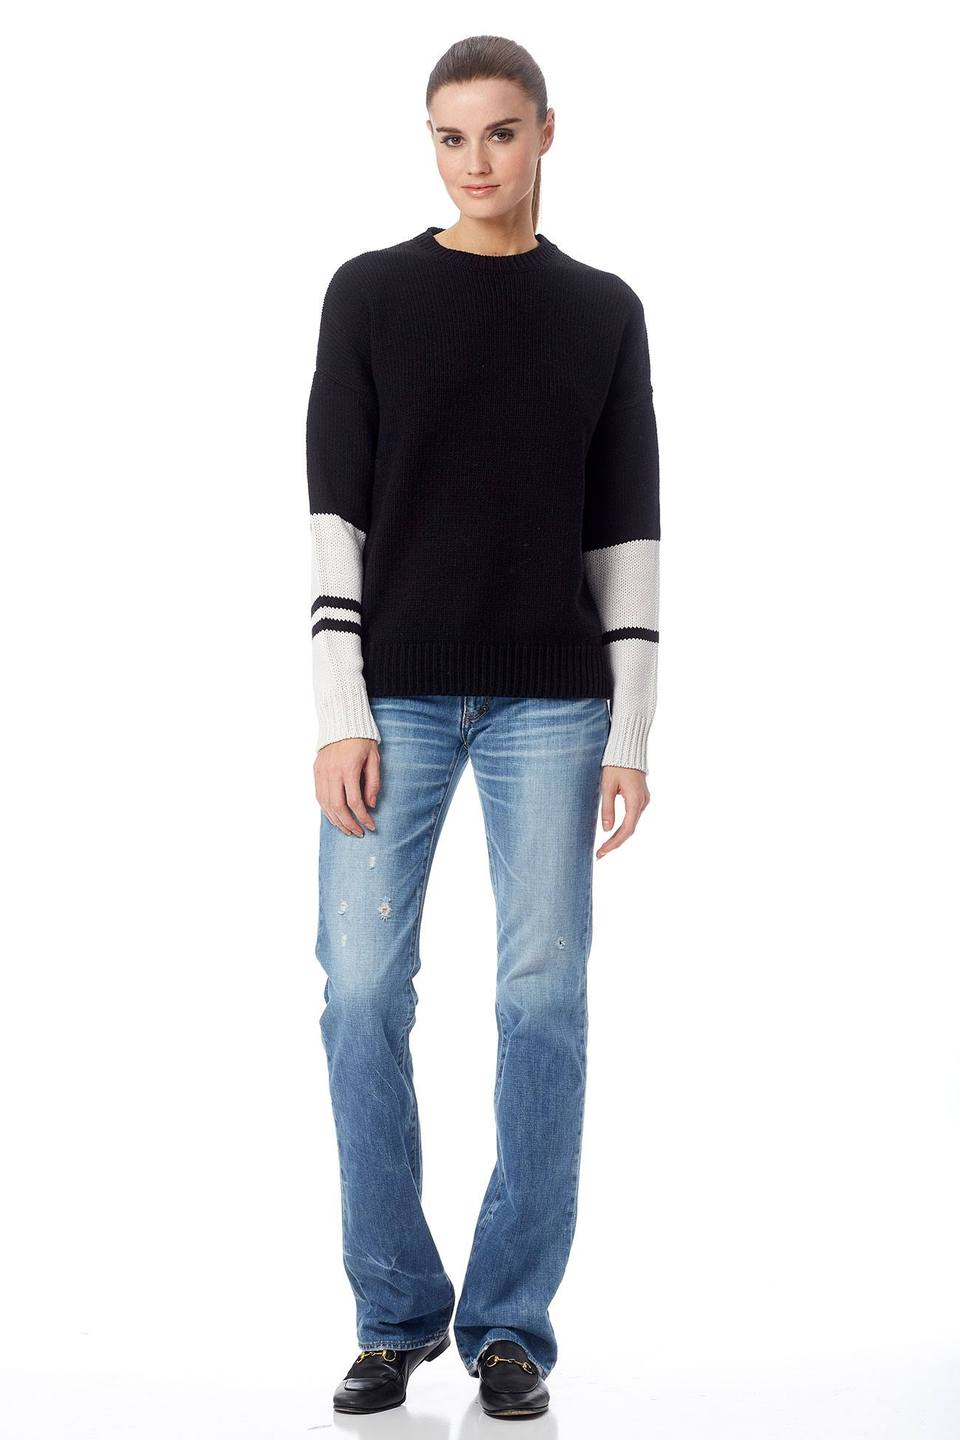 360 SWEATER 36158 shirley colorblock arm crew